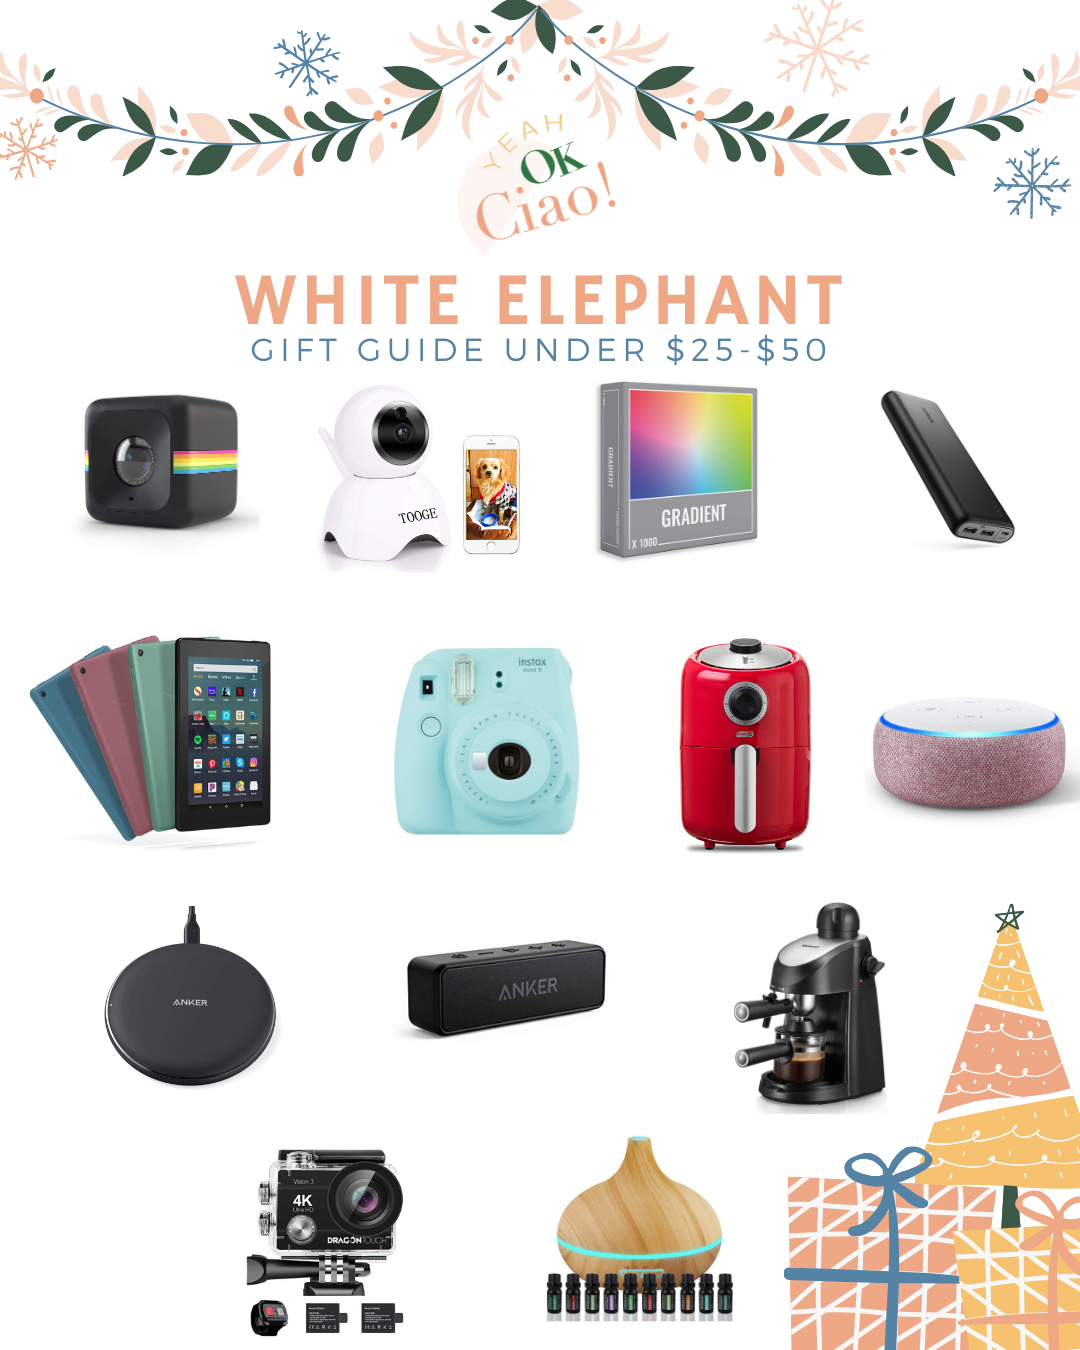 The Ultimate White Elephant Gift Guide For 2019 Yeah Ok Ciao